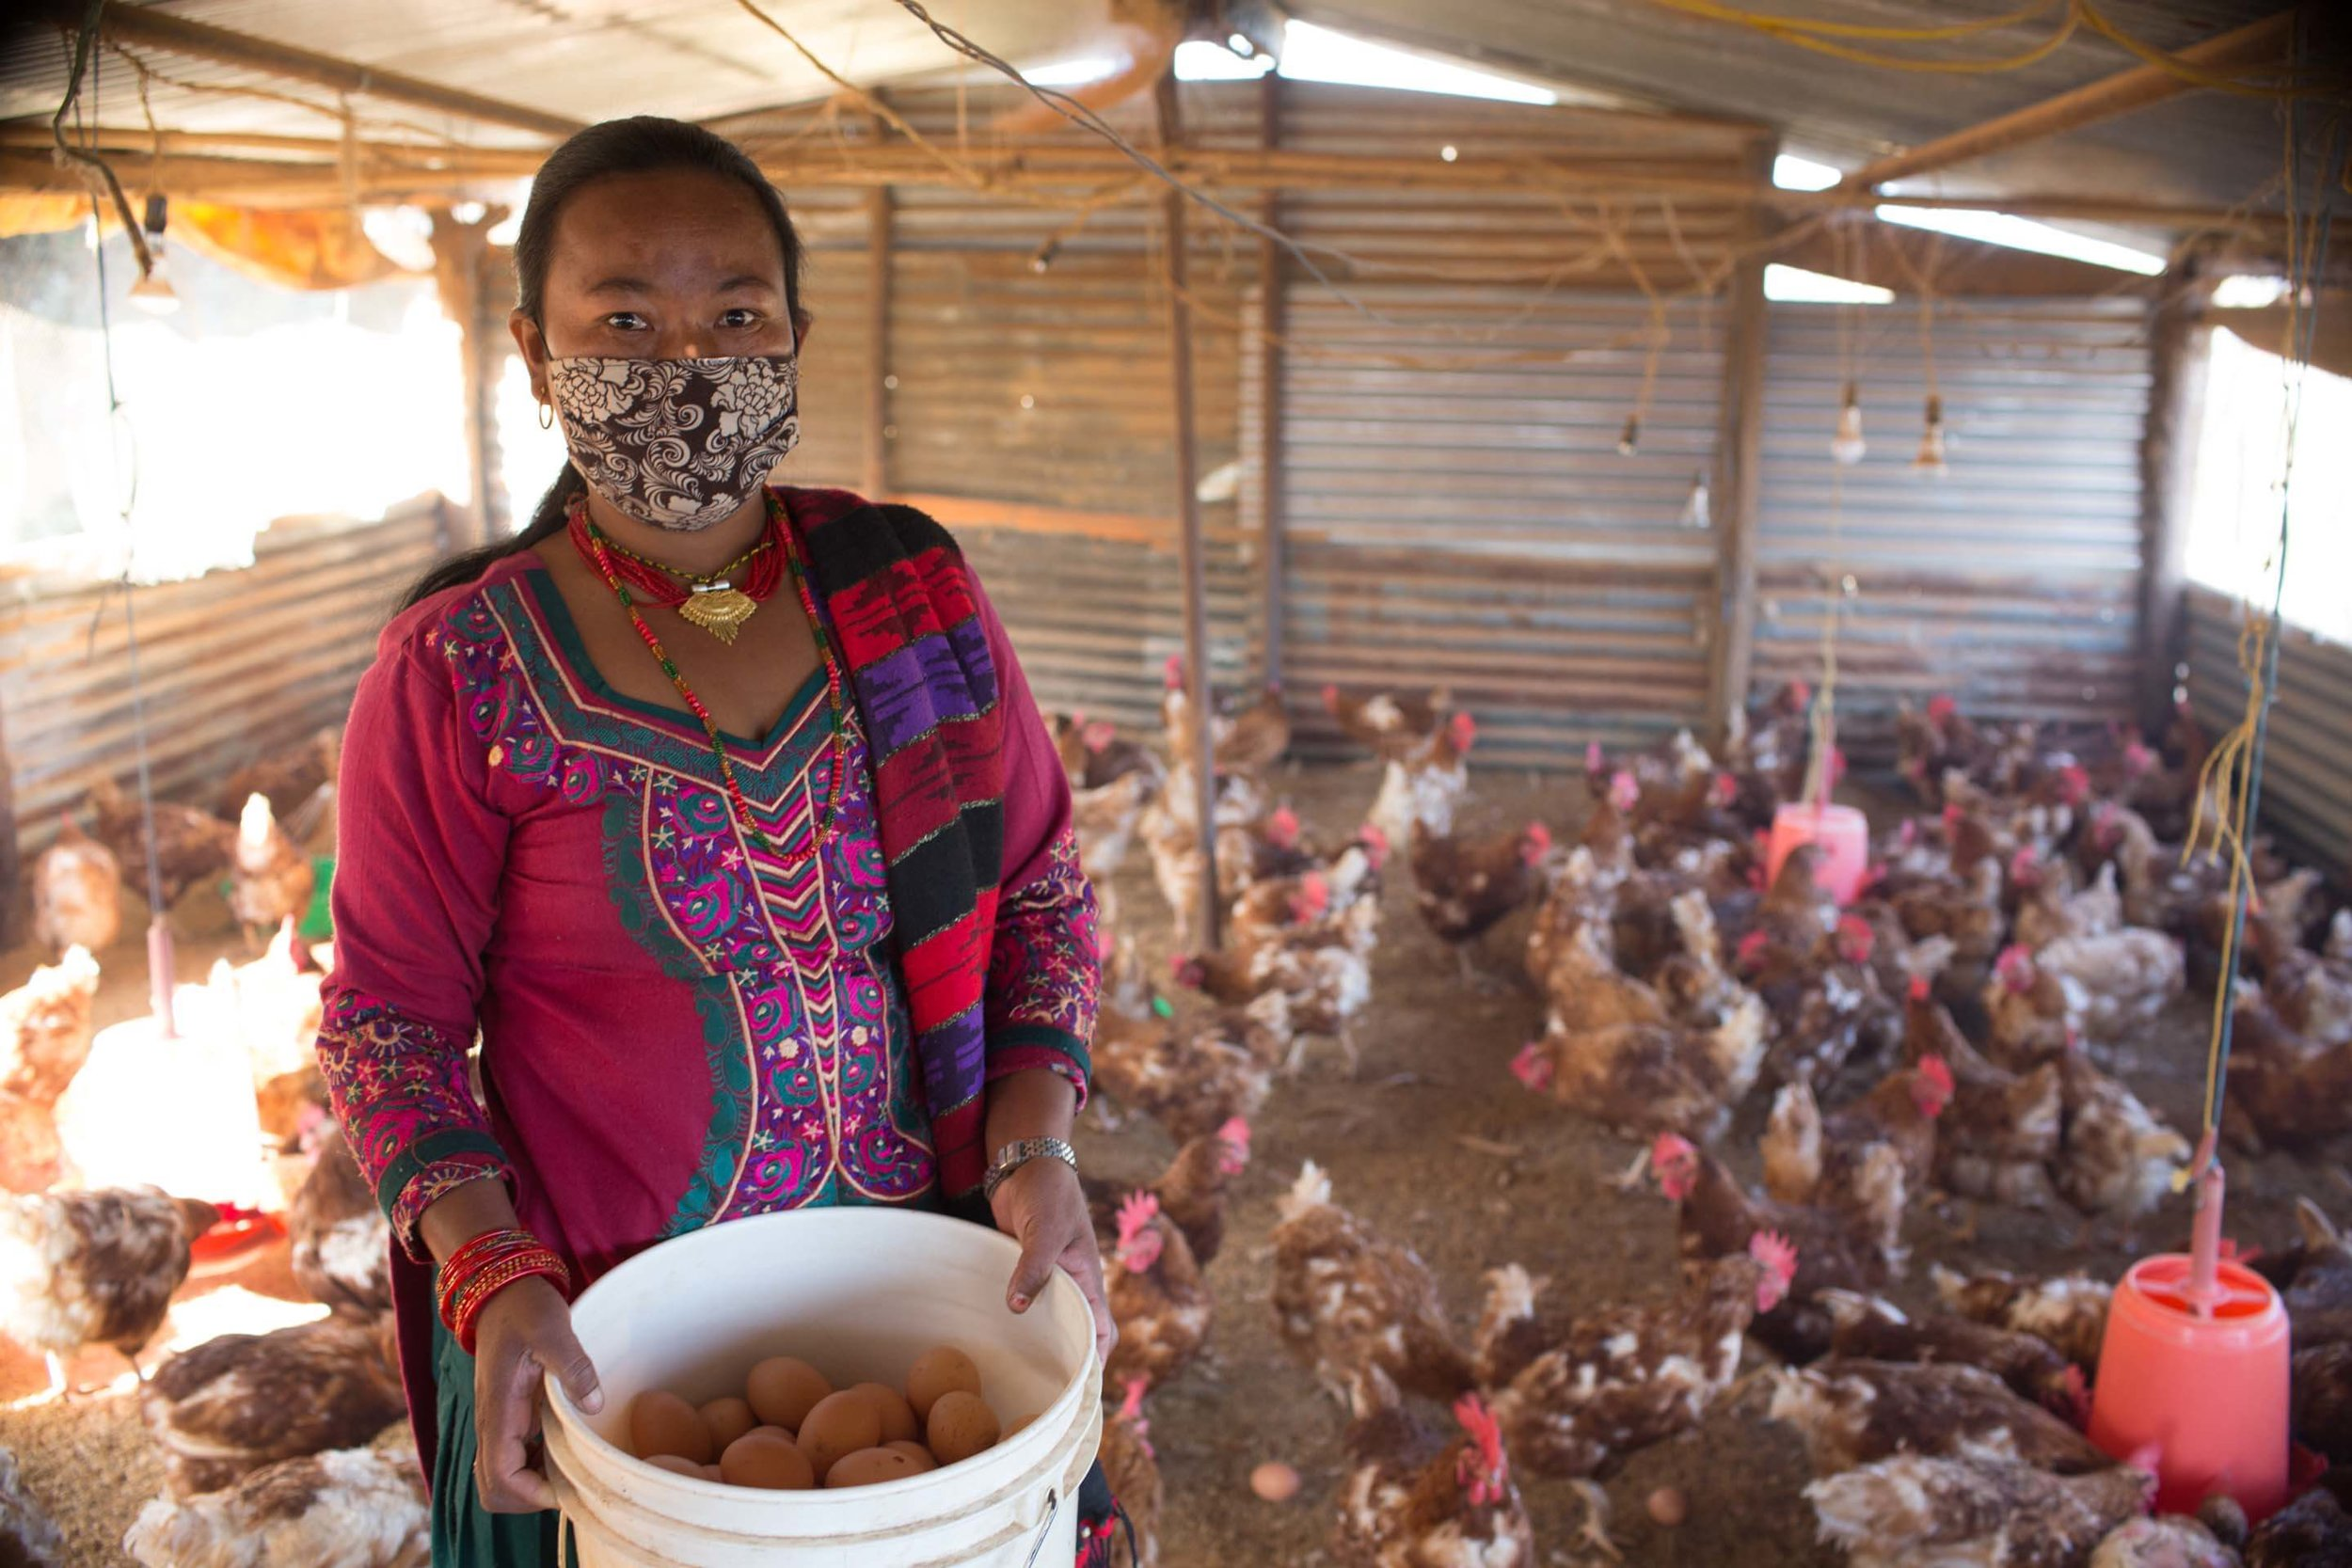 This woman was able to start a successful poultry farming business thanks to training and a small loan from her self-help group.